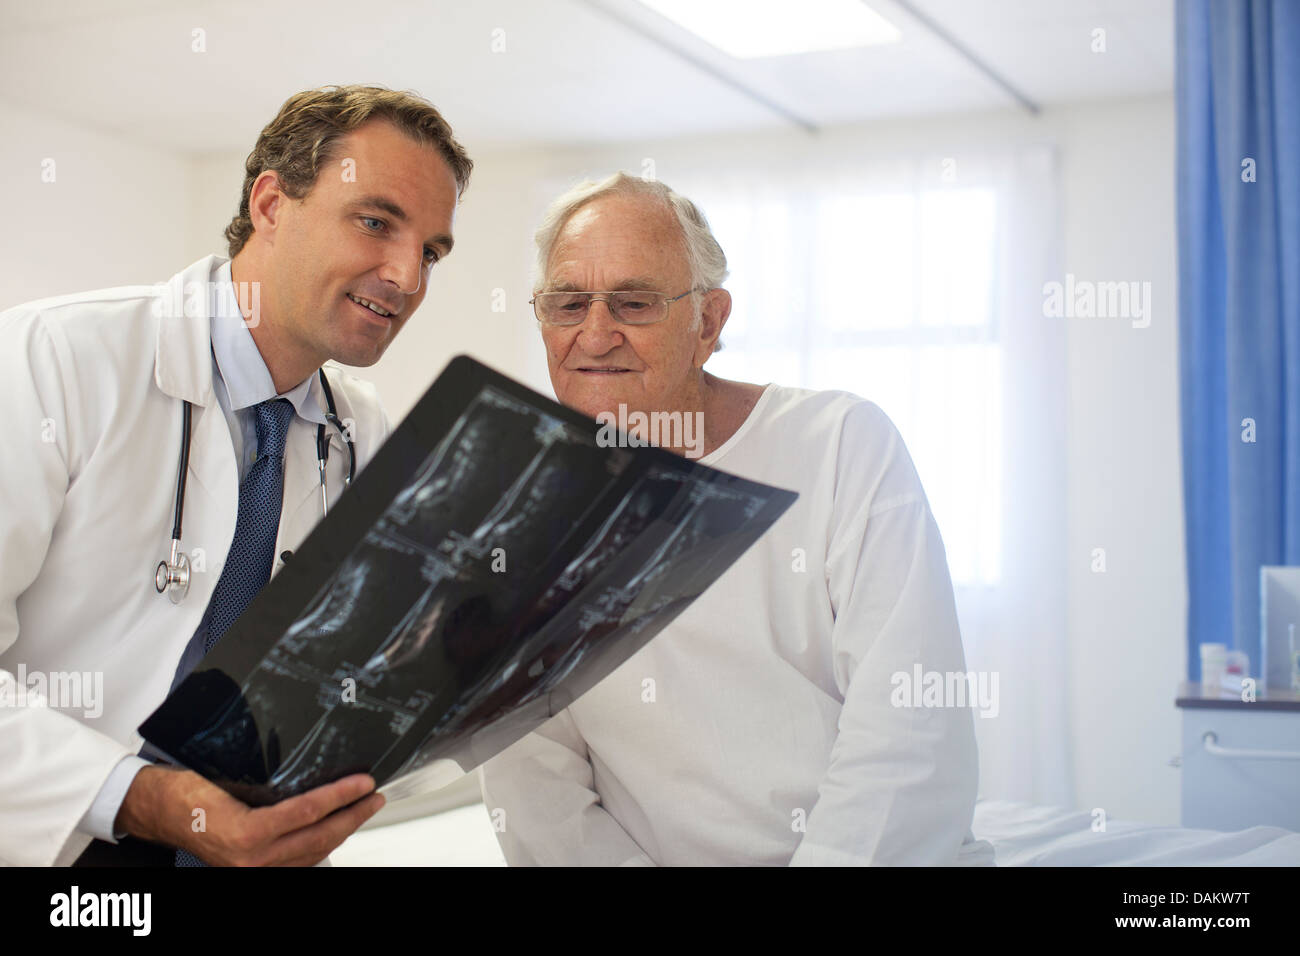 Doctor and patient examining x-rays in hospital room - Stock Image